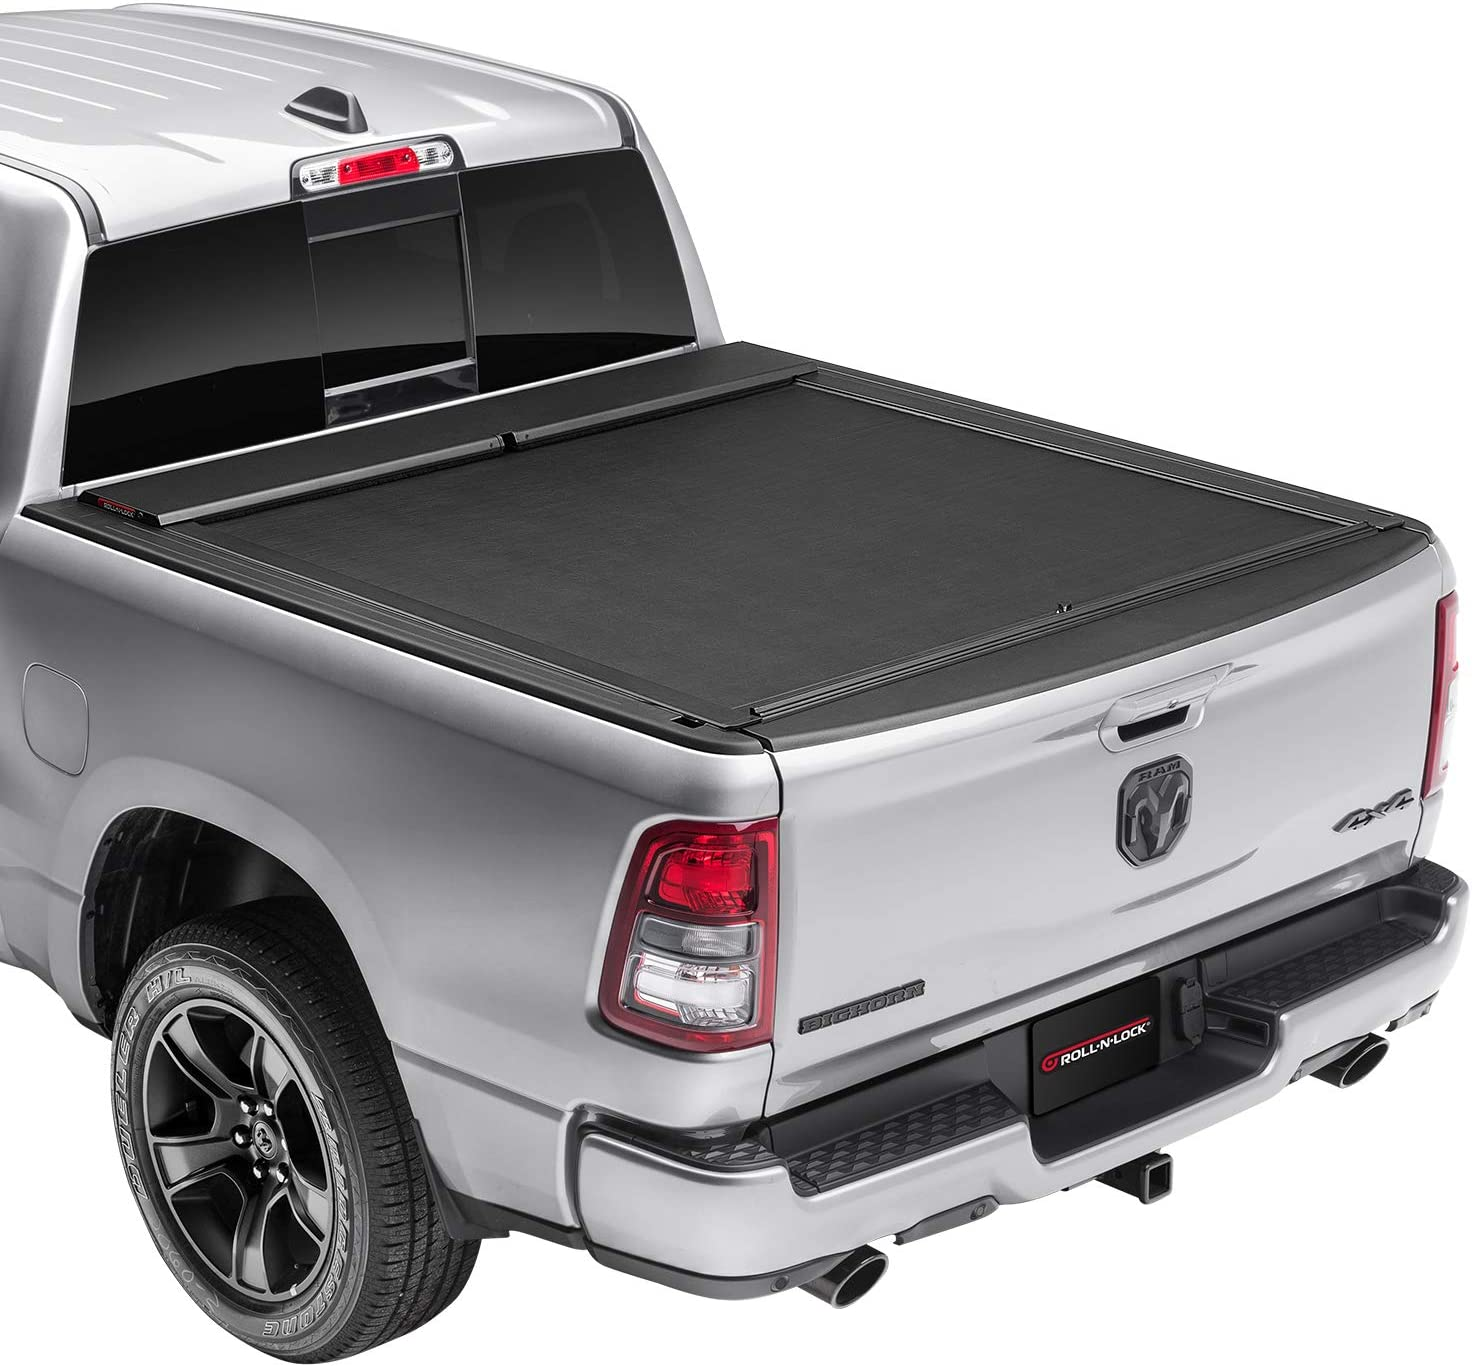 Amazon Com Roll N Lock M Series Retractable Truck Bed Tonneau Cover Lg449m Fits 2009 2018 19 20 Classic Dodge Ram 1500 3500 8 2 Bed 98 3 Automotive